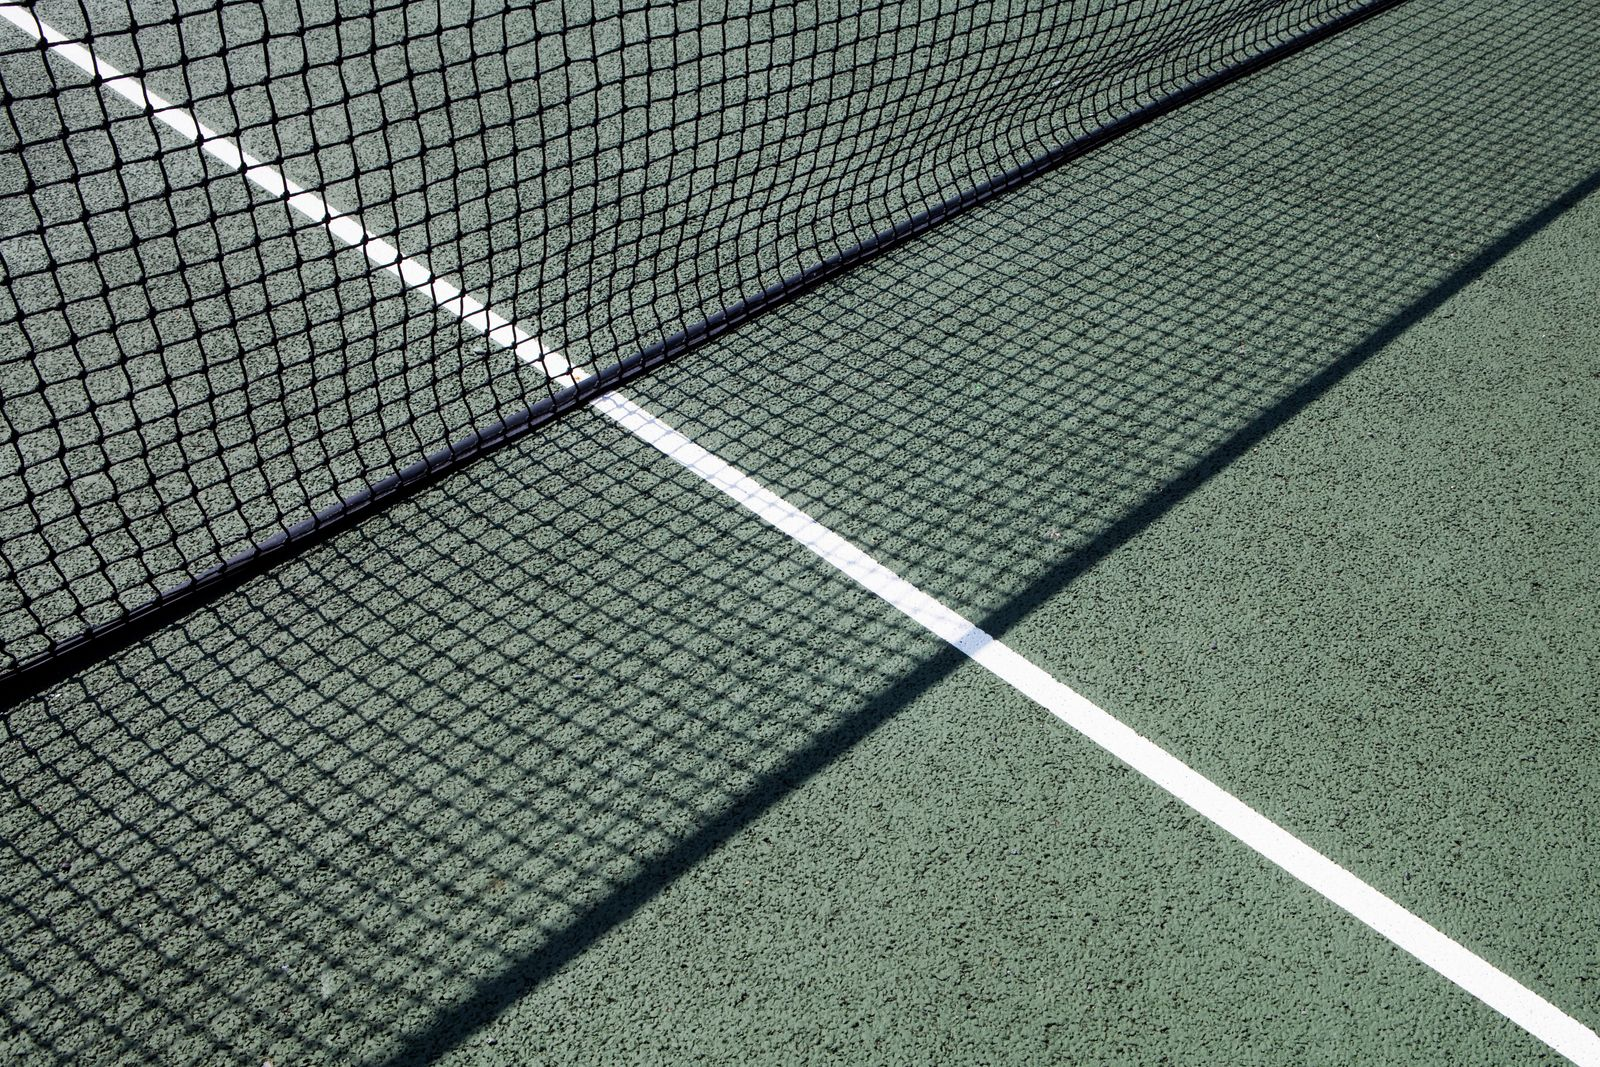 Tennis net on court at day time